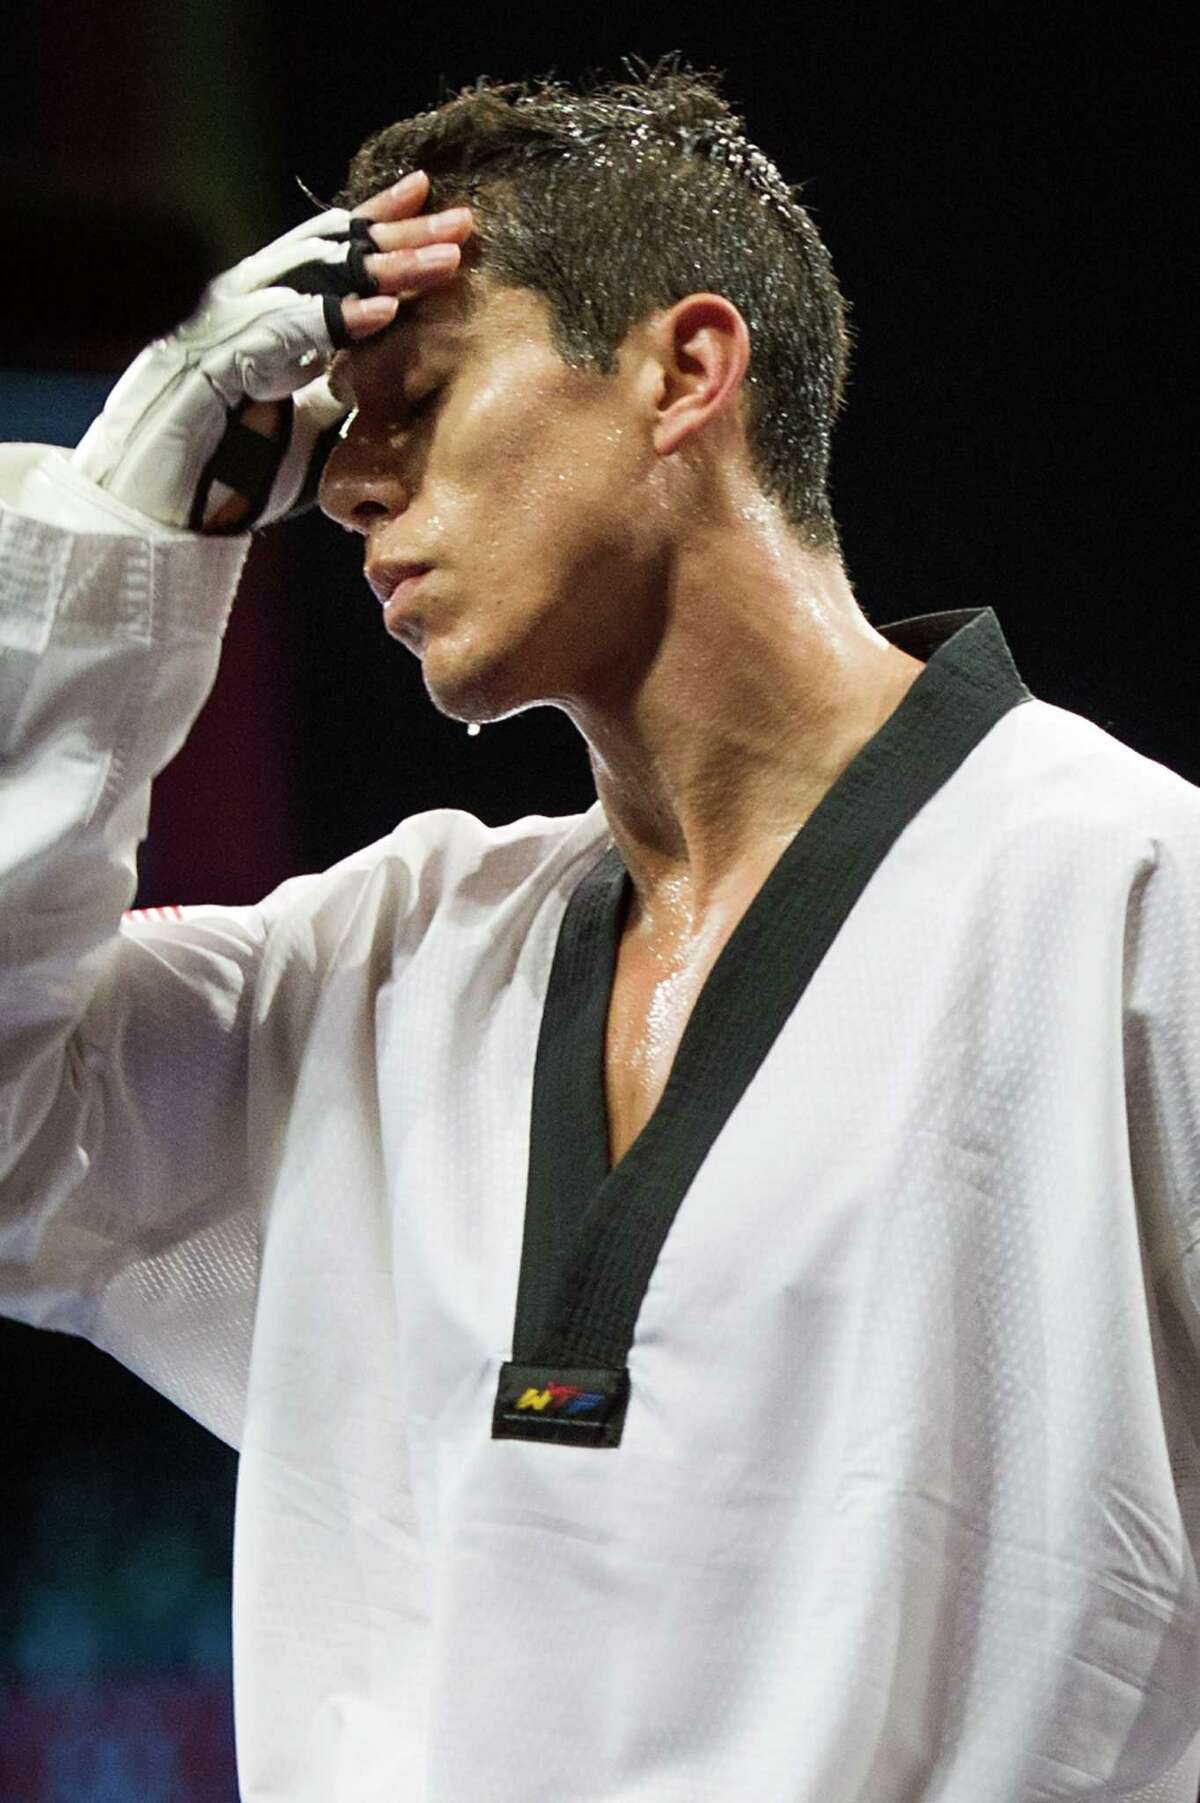 Steven Lopez of the USA reacts as he walks out of the arena after losing to Azerbaijan's Ramin Azizov in the men's 80-kg taekwondo competition at the 2012 London Olympics on Friday, Aug. 10, 2012.